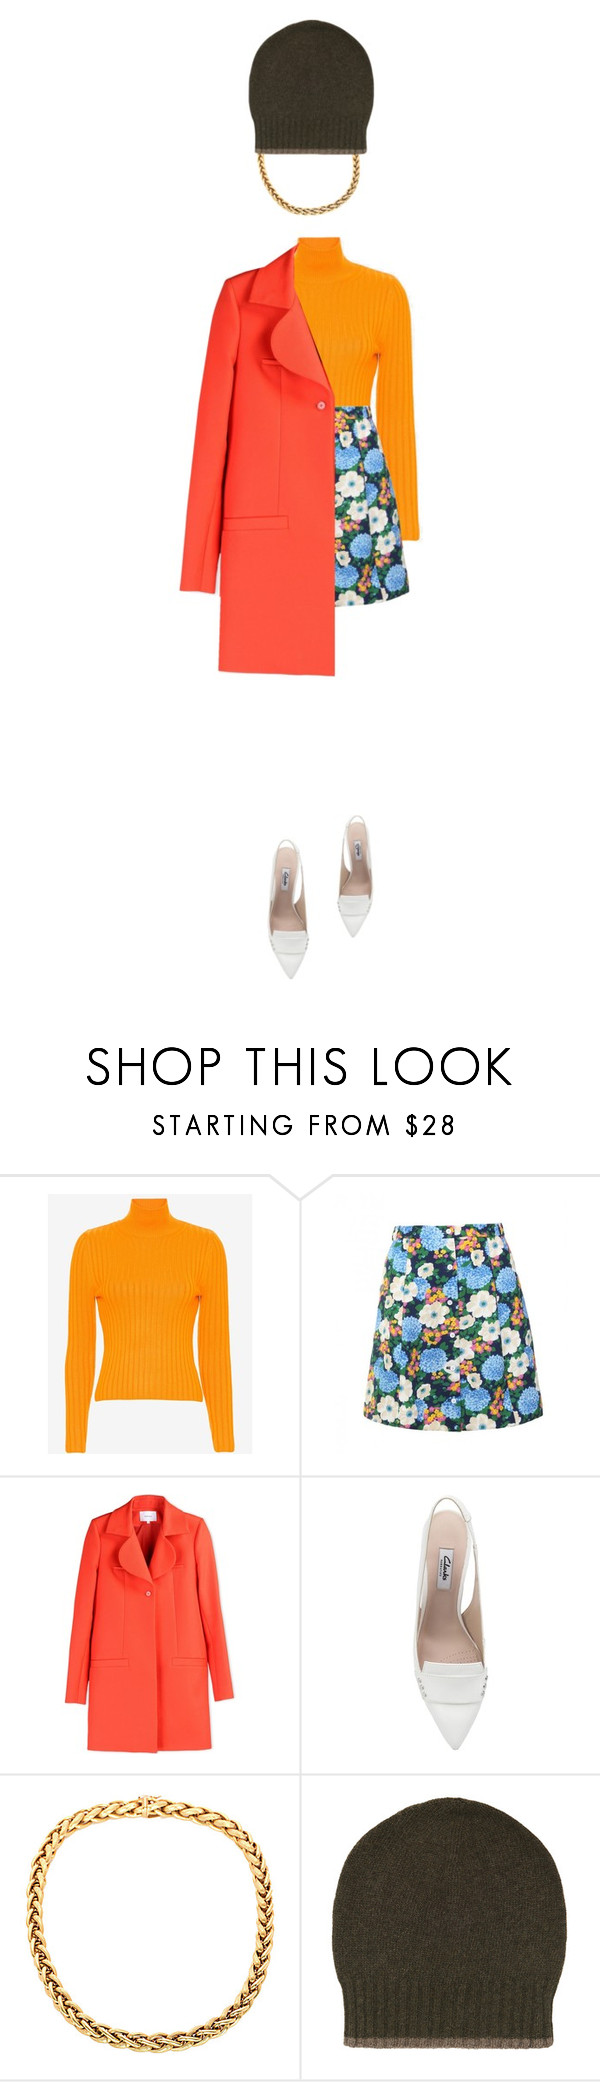 """""""Untitled #2304"""" by misnik ❤ liked on Polyvore featuring Carven, Clarks and FAY"""